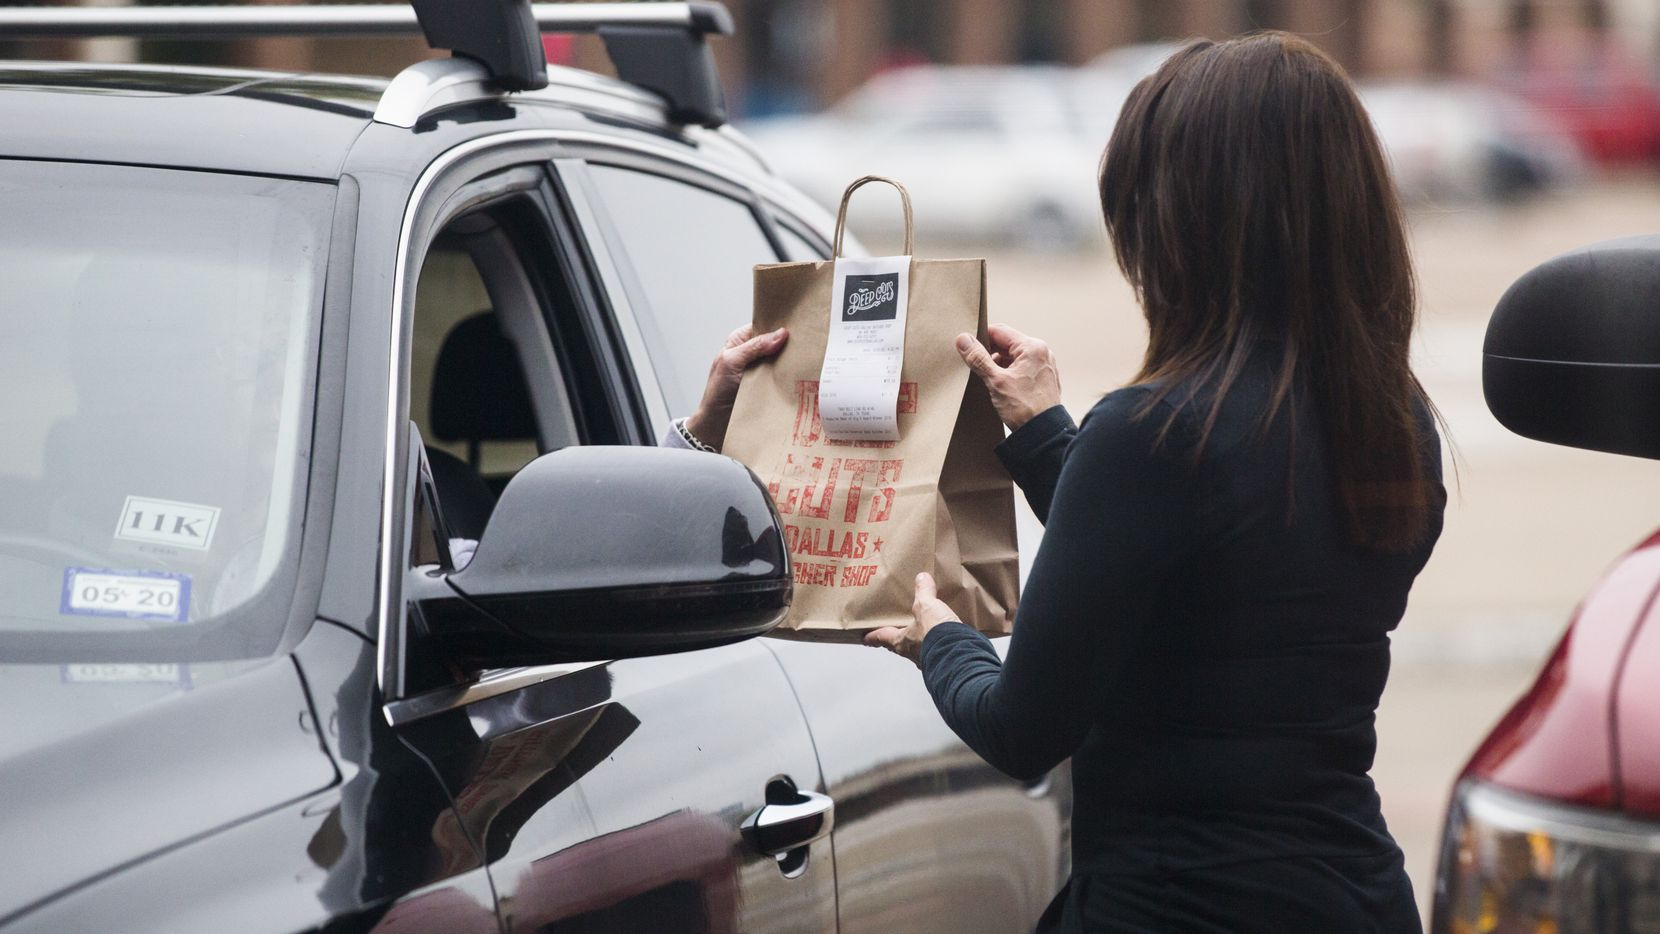 Delivery, curbside pickup or drive-through options are available at various restaurants in the Dallas-Fort Worth area.